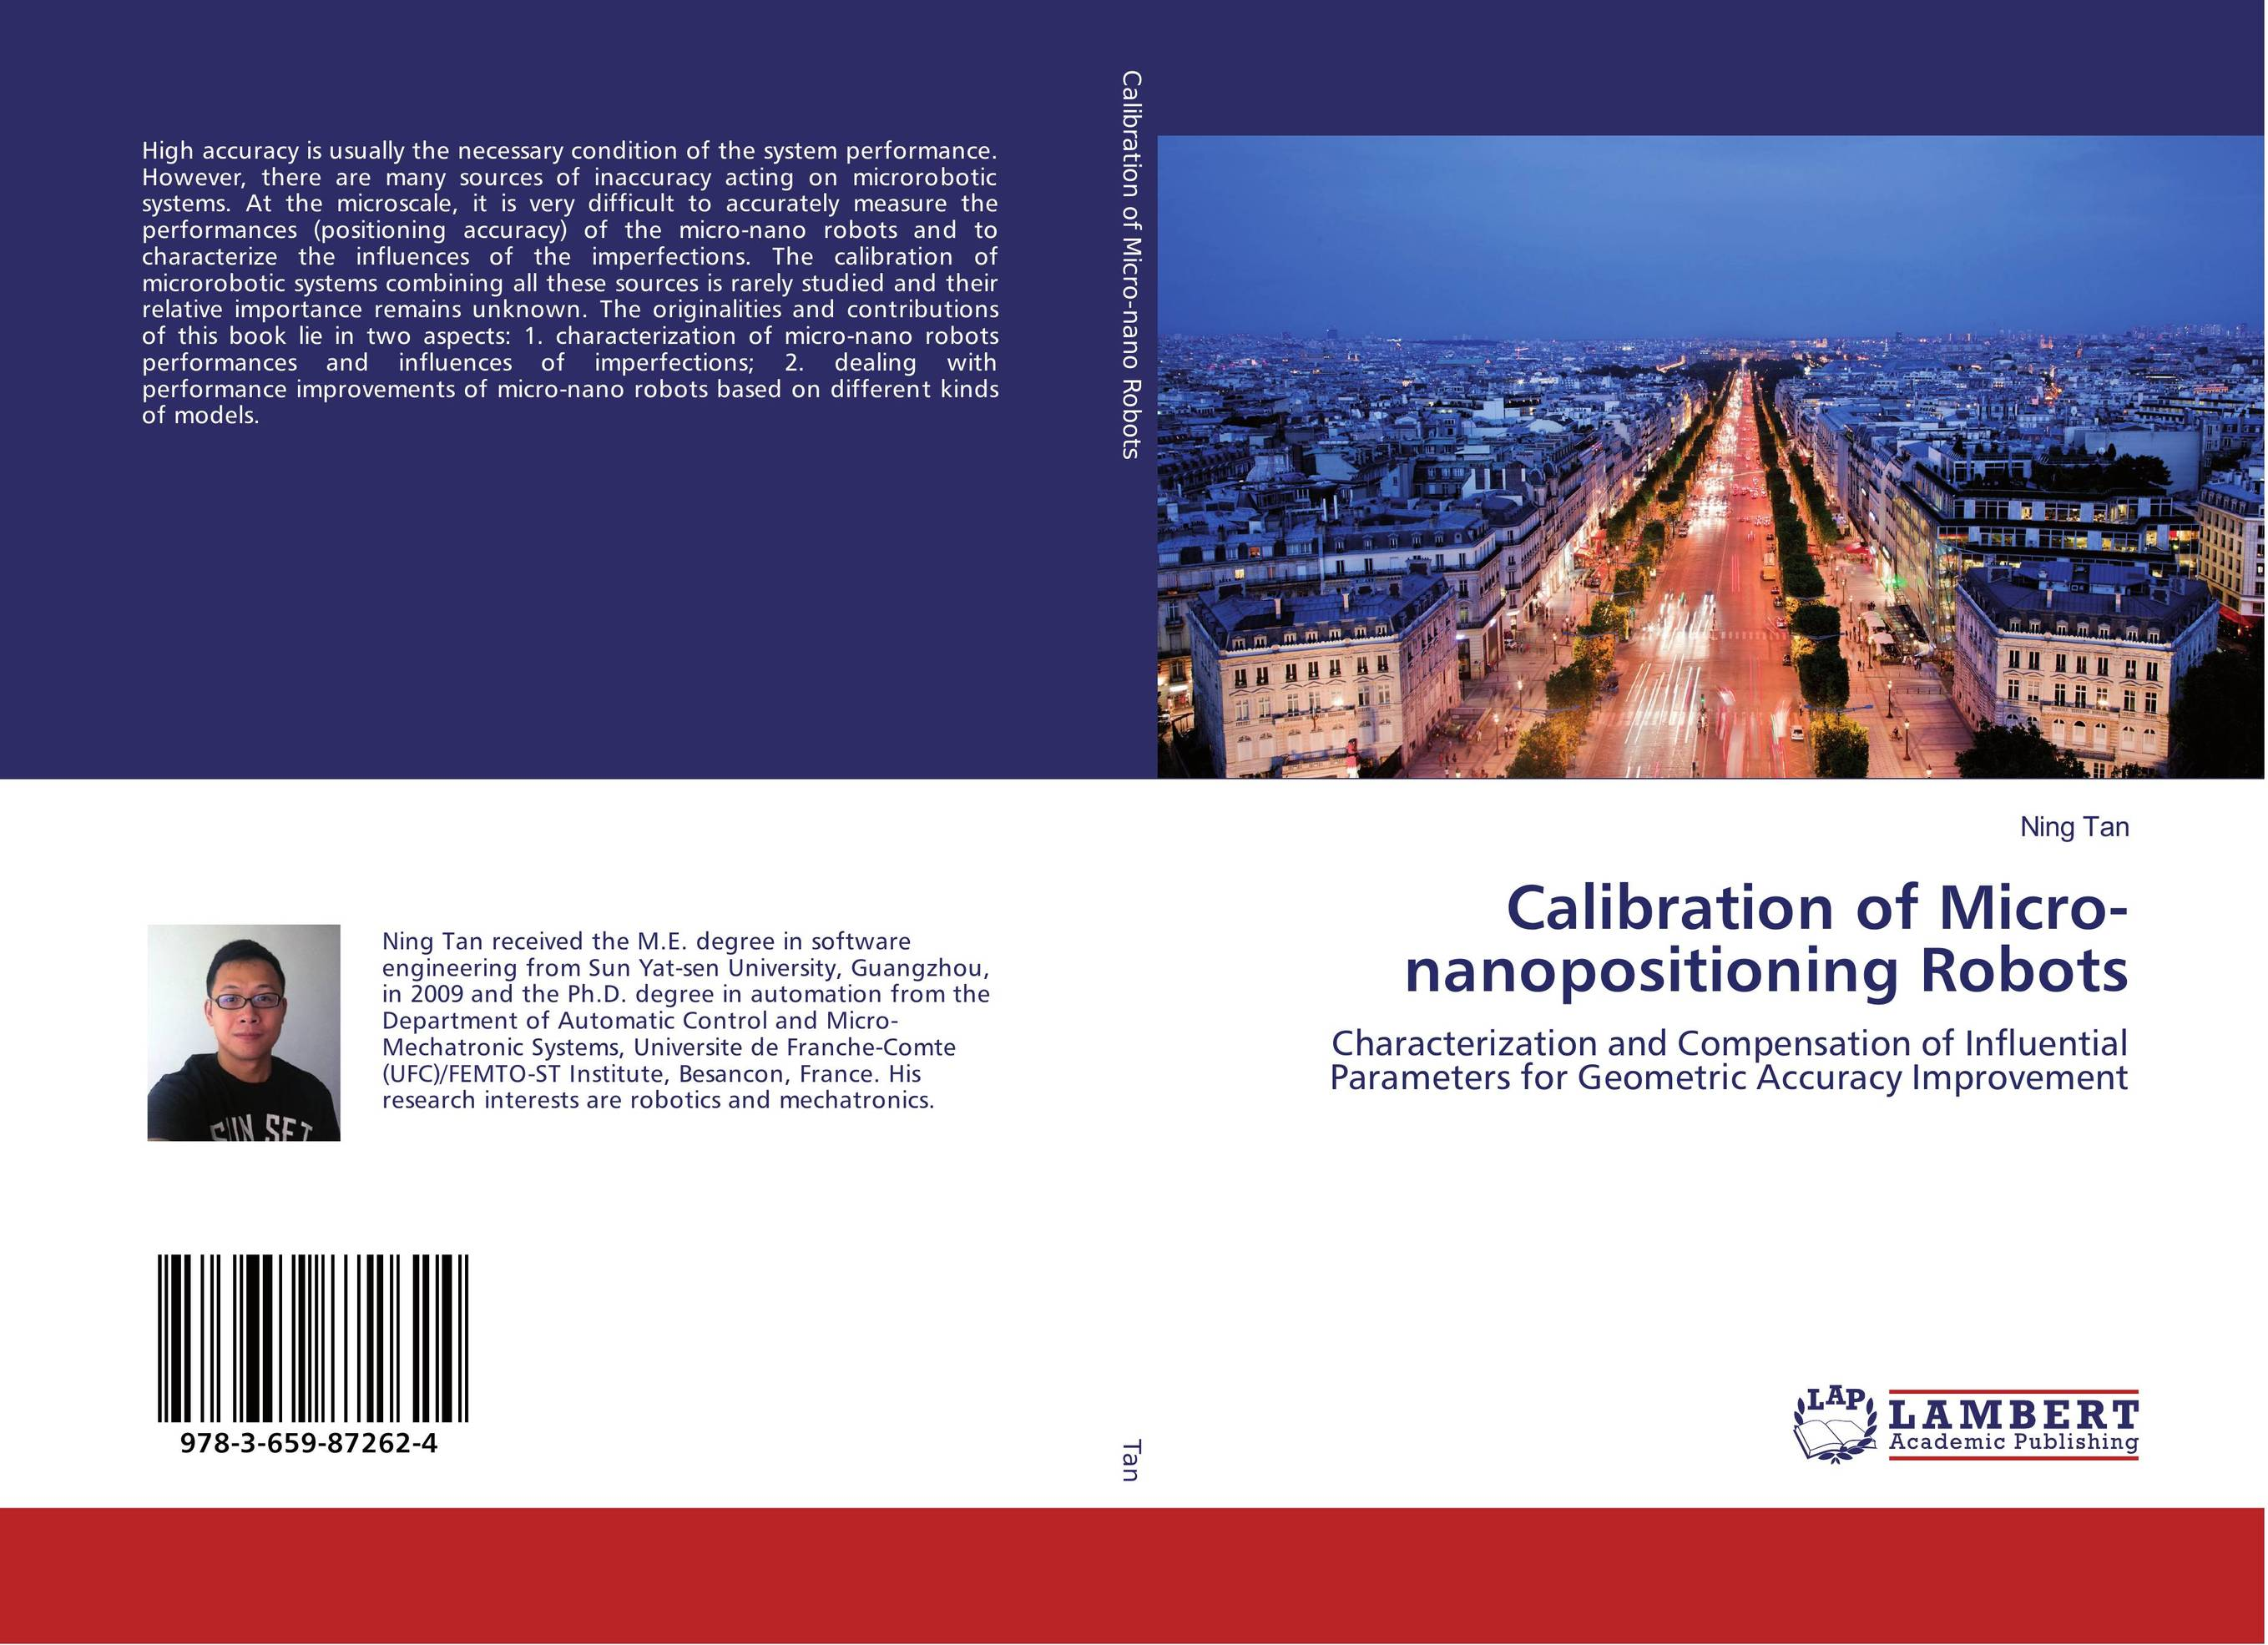 Calibration of Micro-nanopositioning Robots robots and the whole technology story